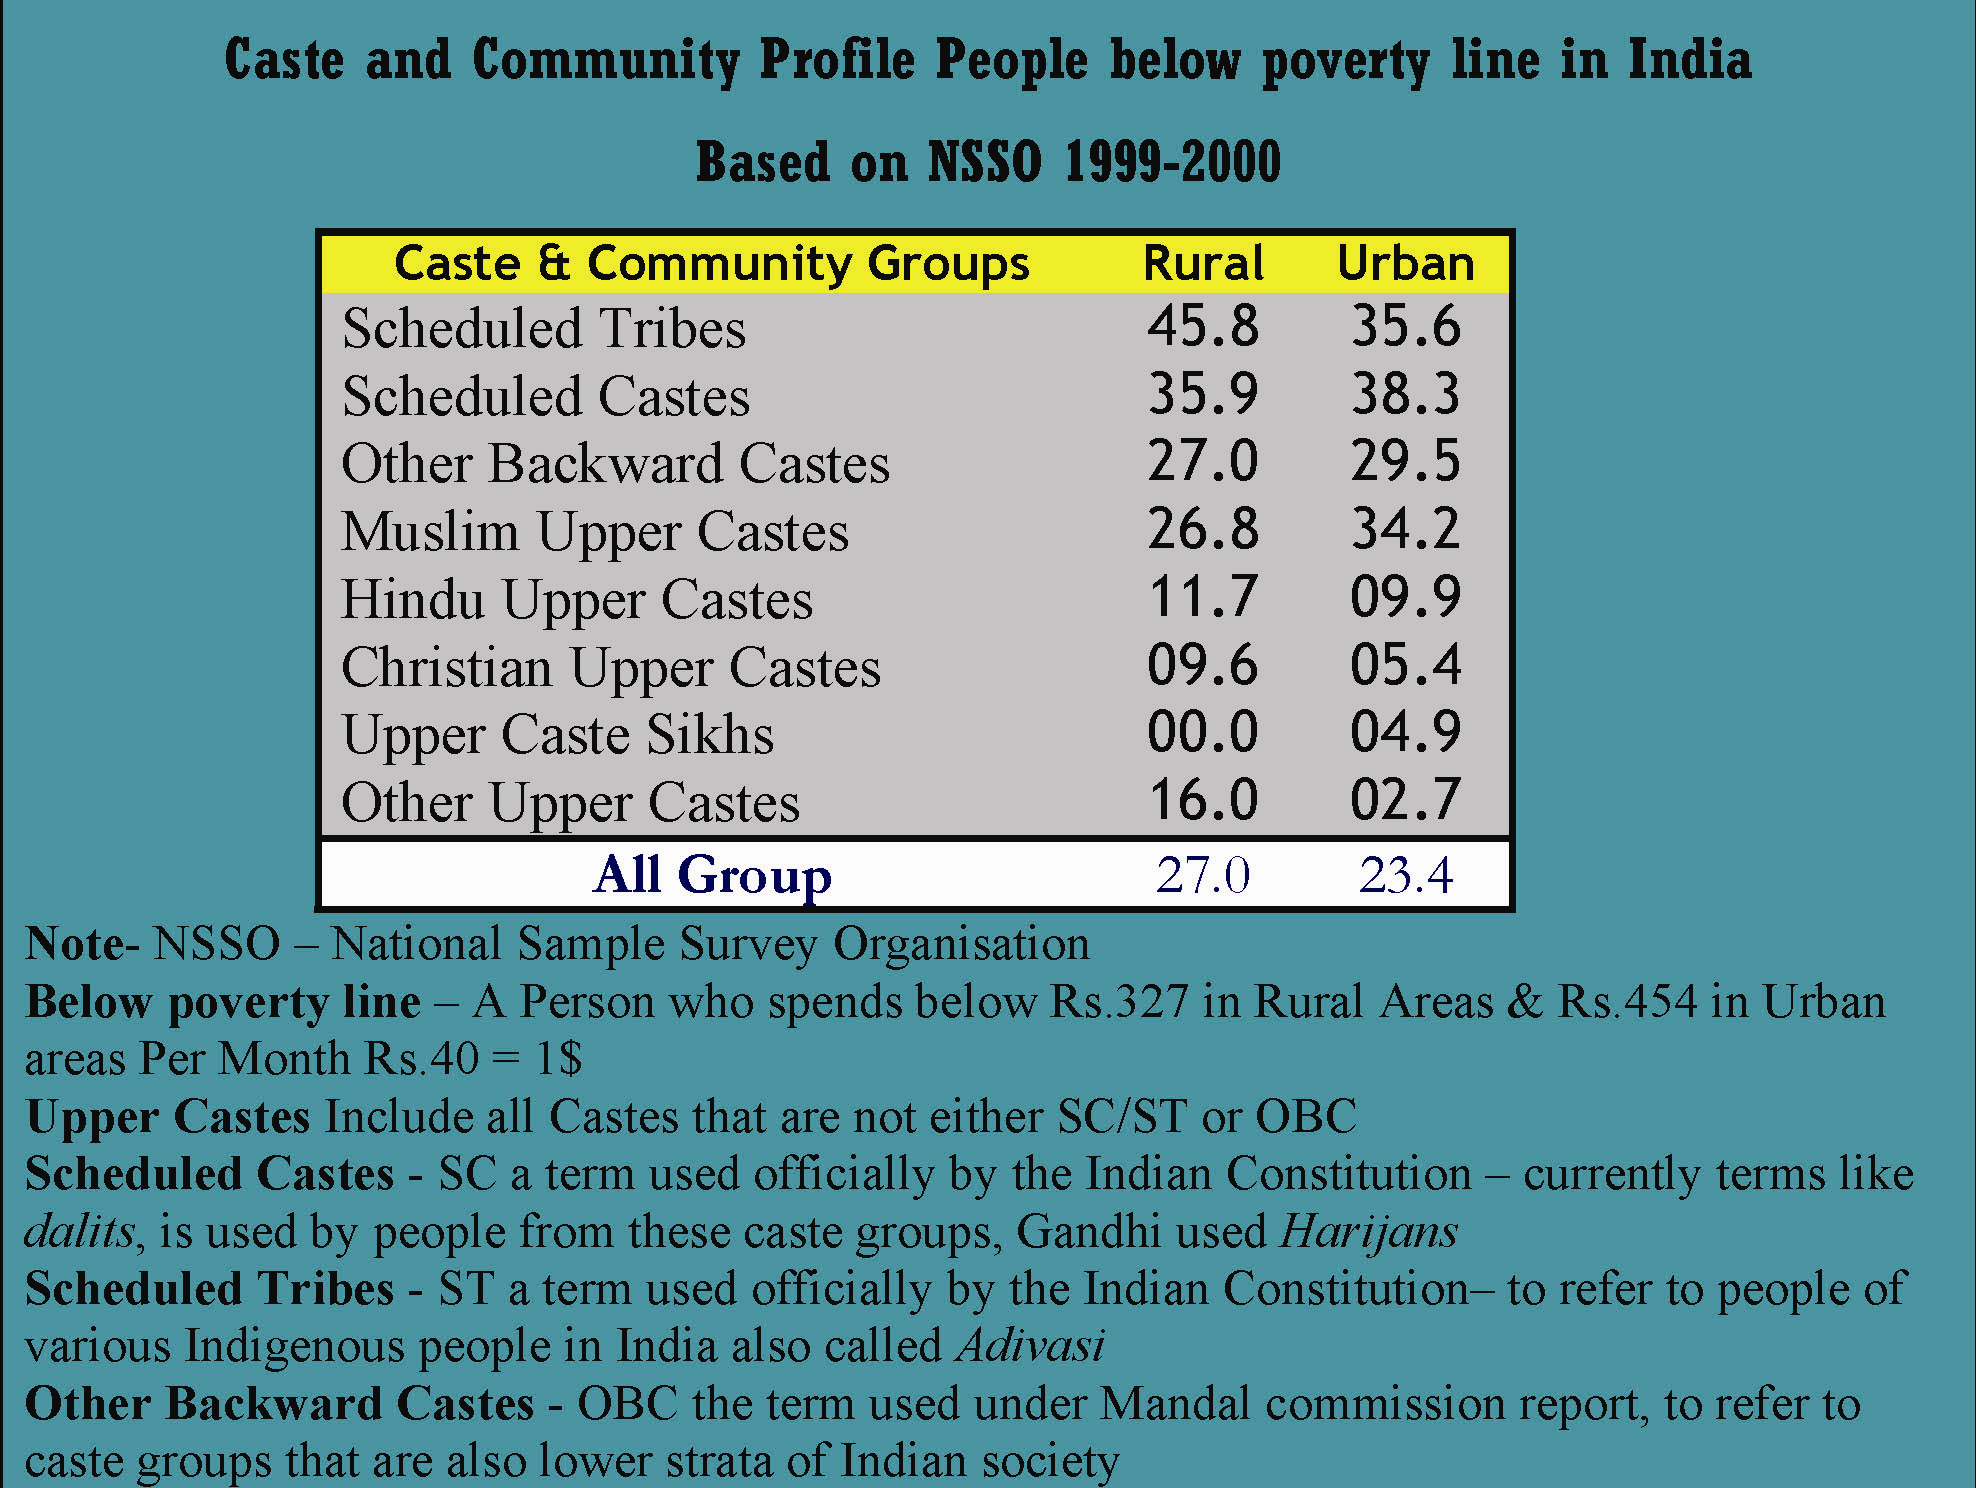 caste system essay The structure of the hindu caste was established by the british in the course of colonization this means that the british imposed systems upon the indians.